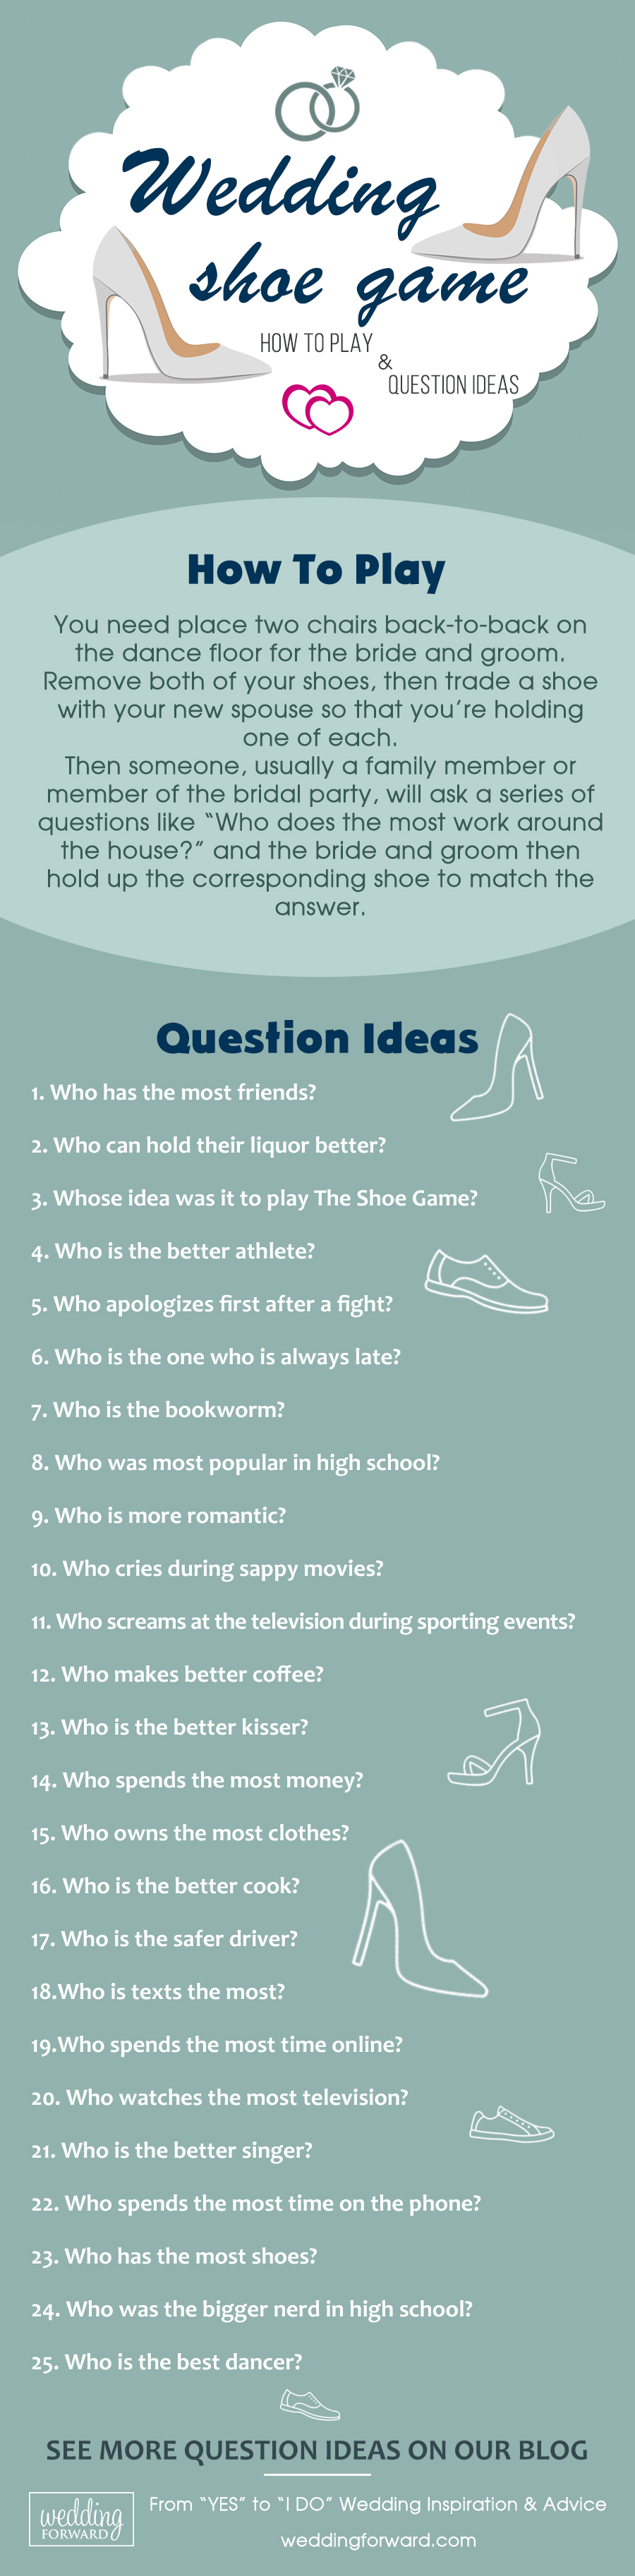 the shoe game how to play and question ideas